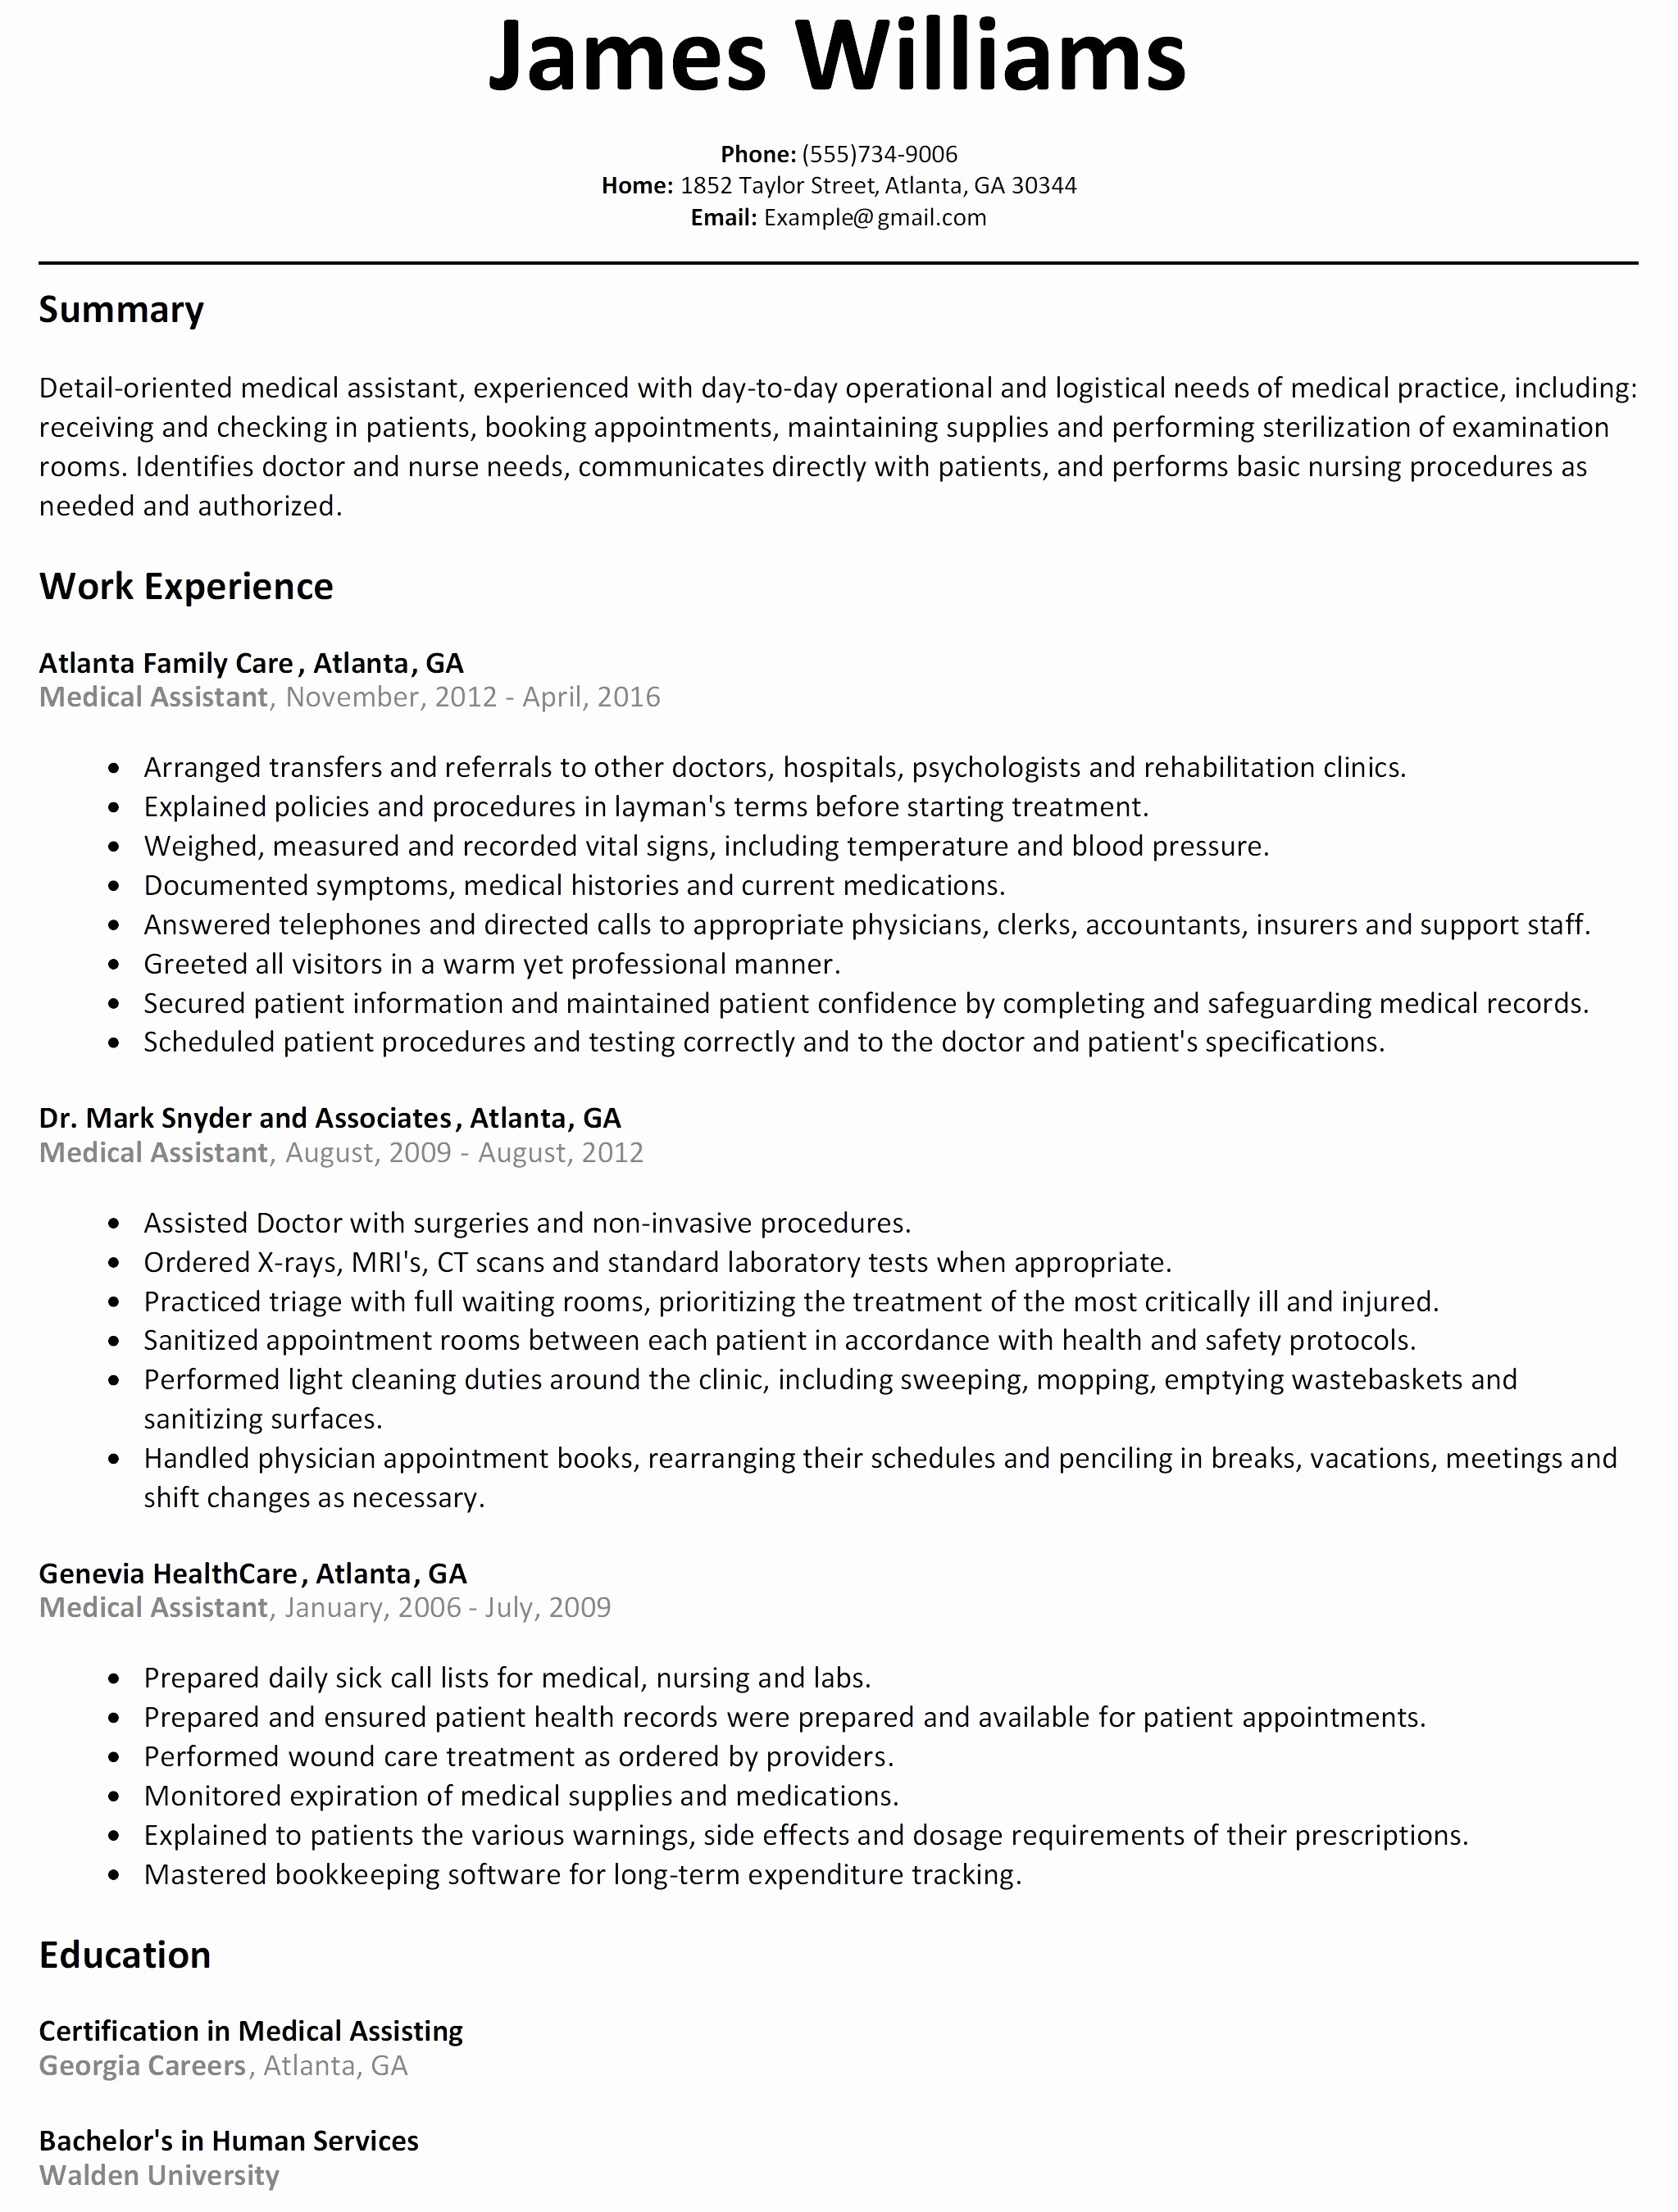 Microsoft Resume Templates Free Download Unique Download Resume Templates for Microsoft Word